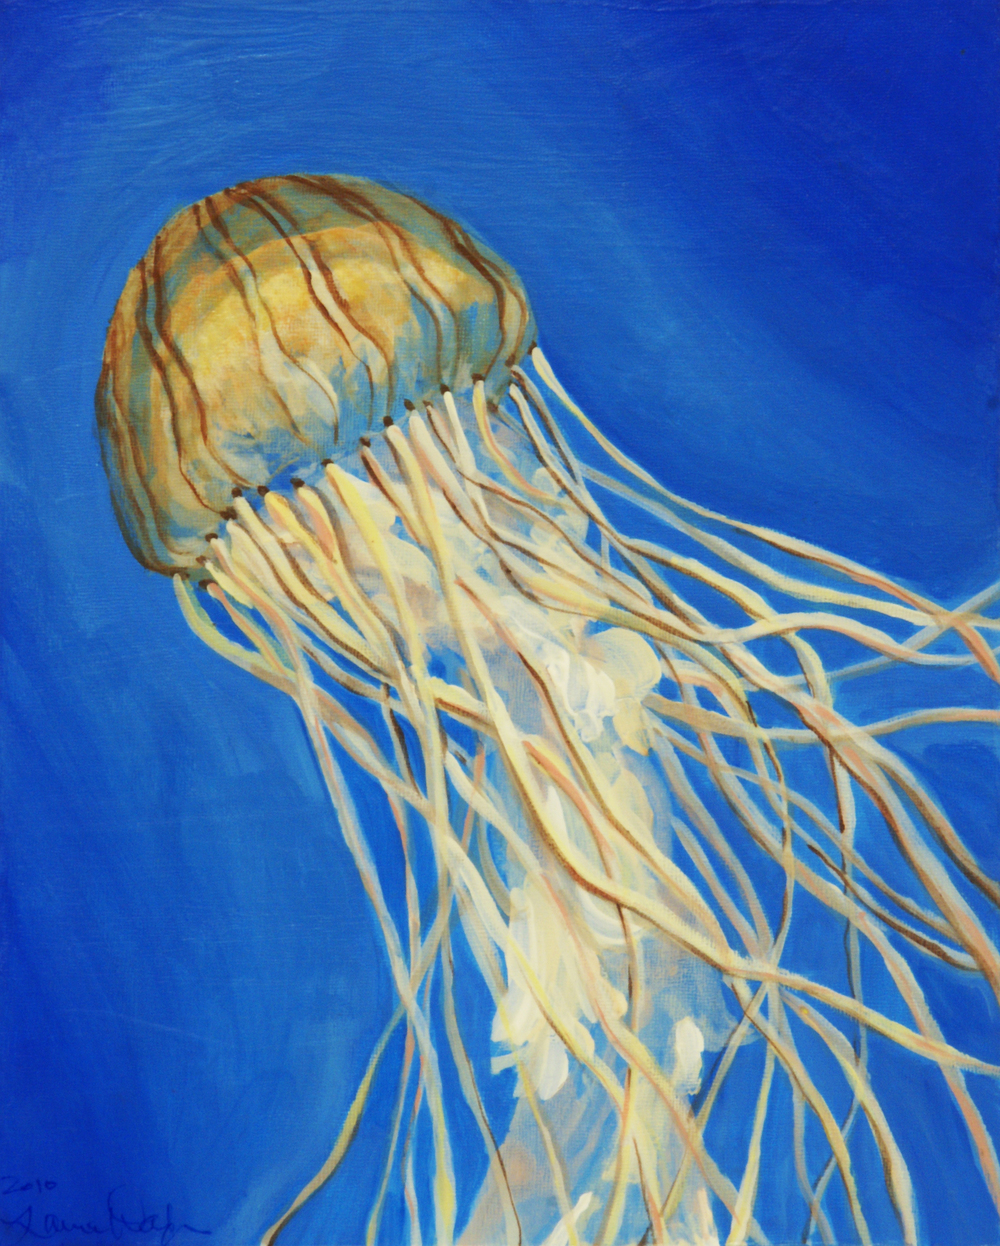 Northern Sea Nettle